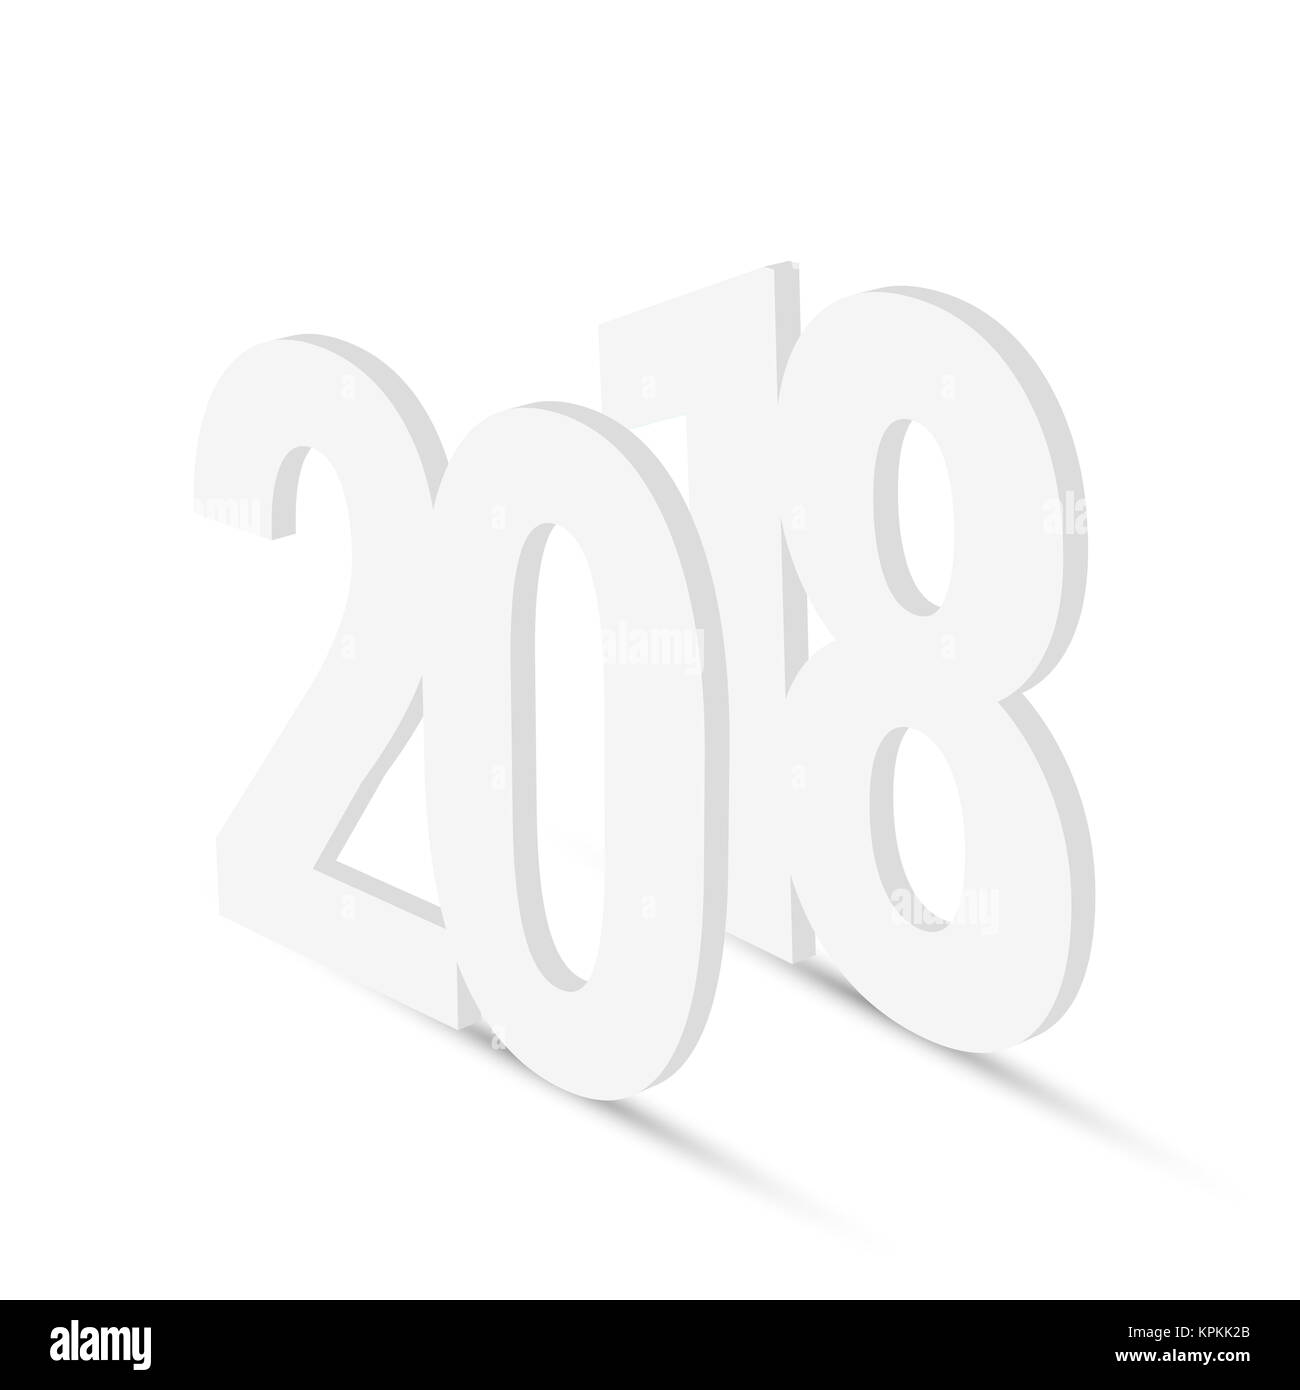 2018 blank white 3d figures happy new year 2018 greeting card design element